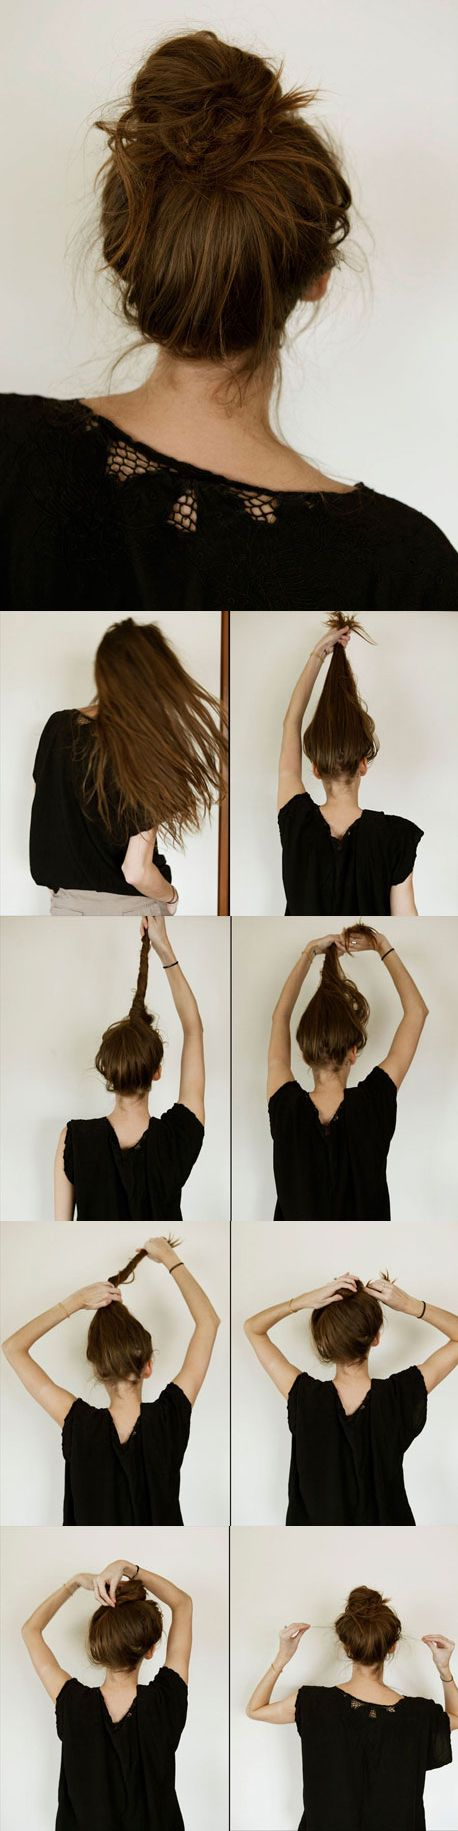 Oh-So-Simple Bun Hairstyles: Tutorials Messy Bun